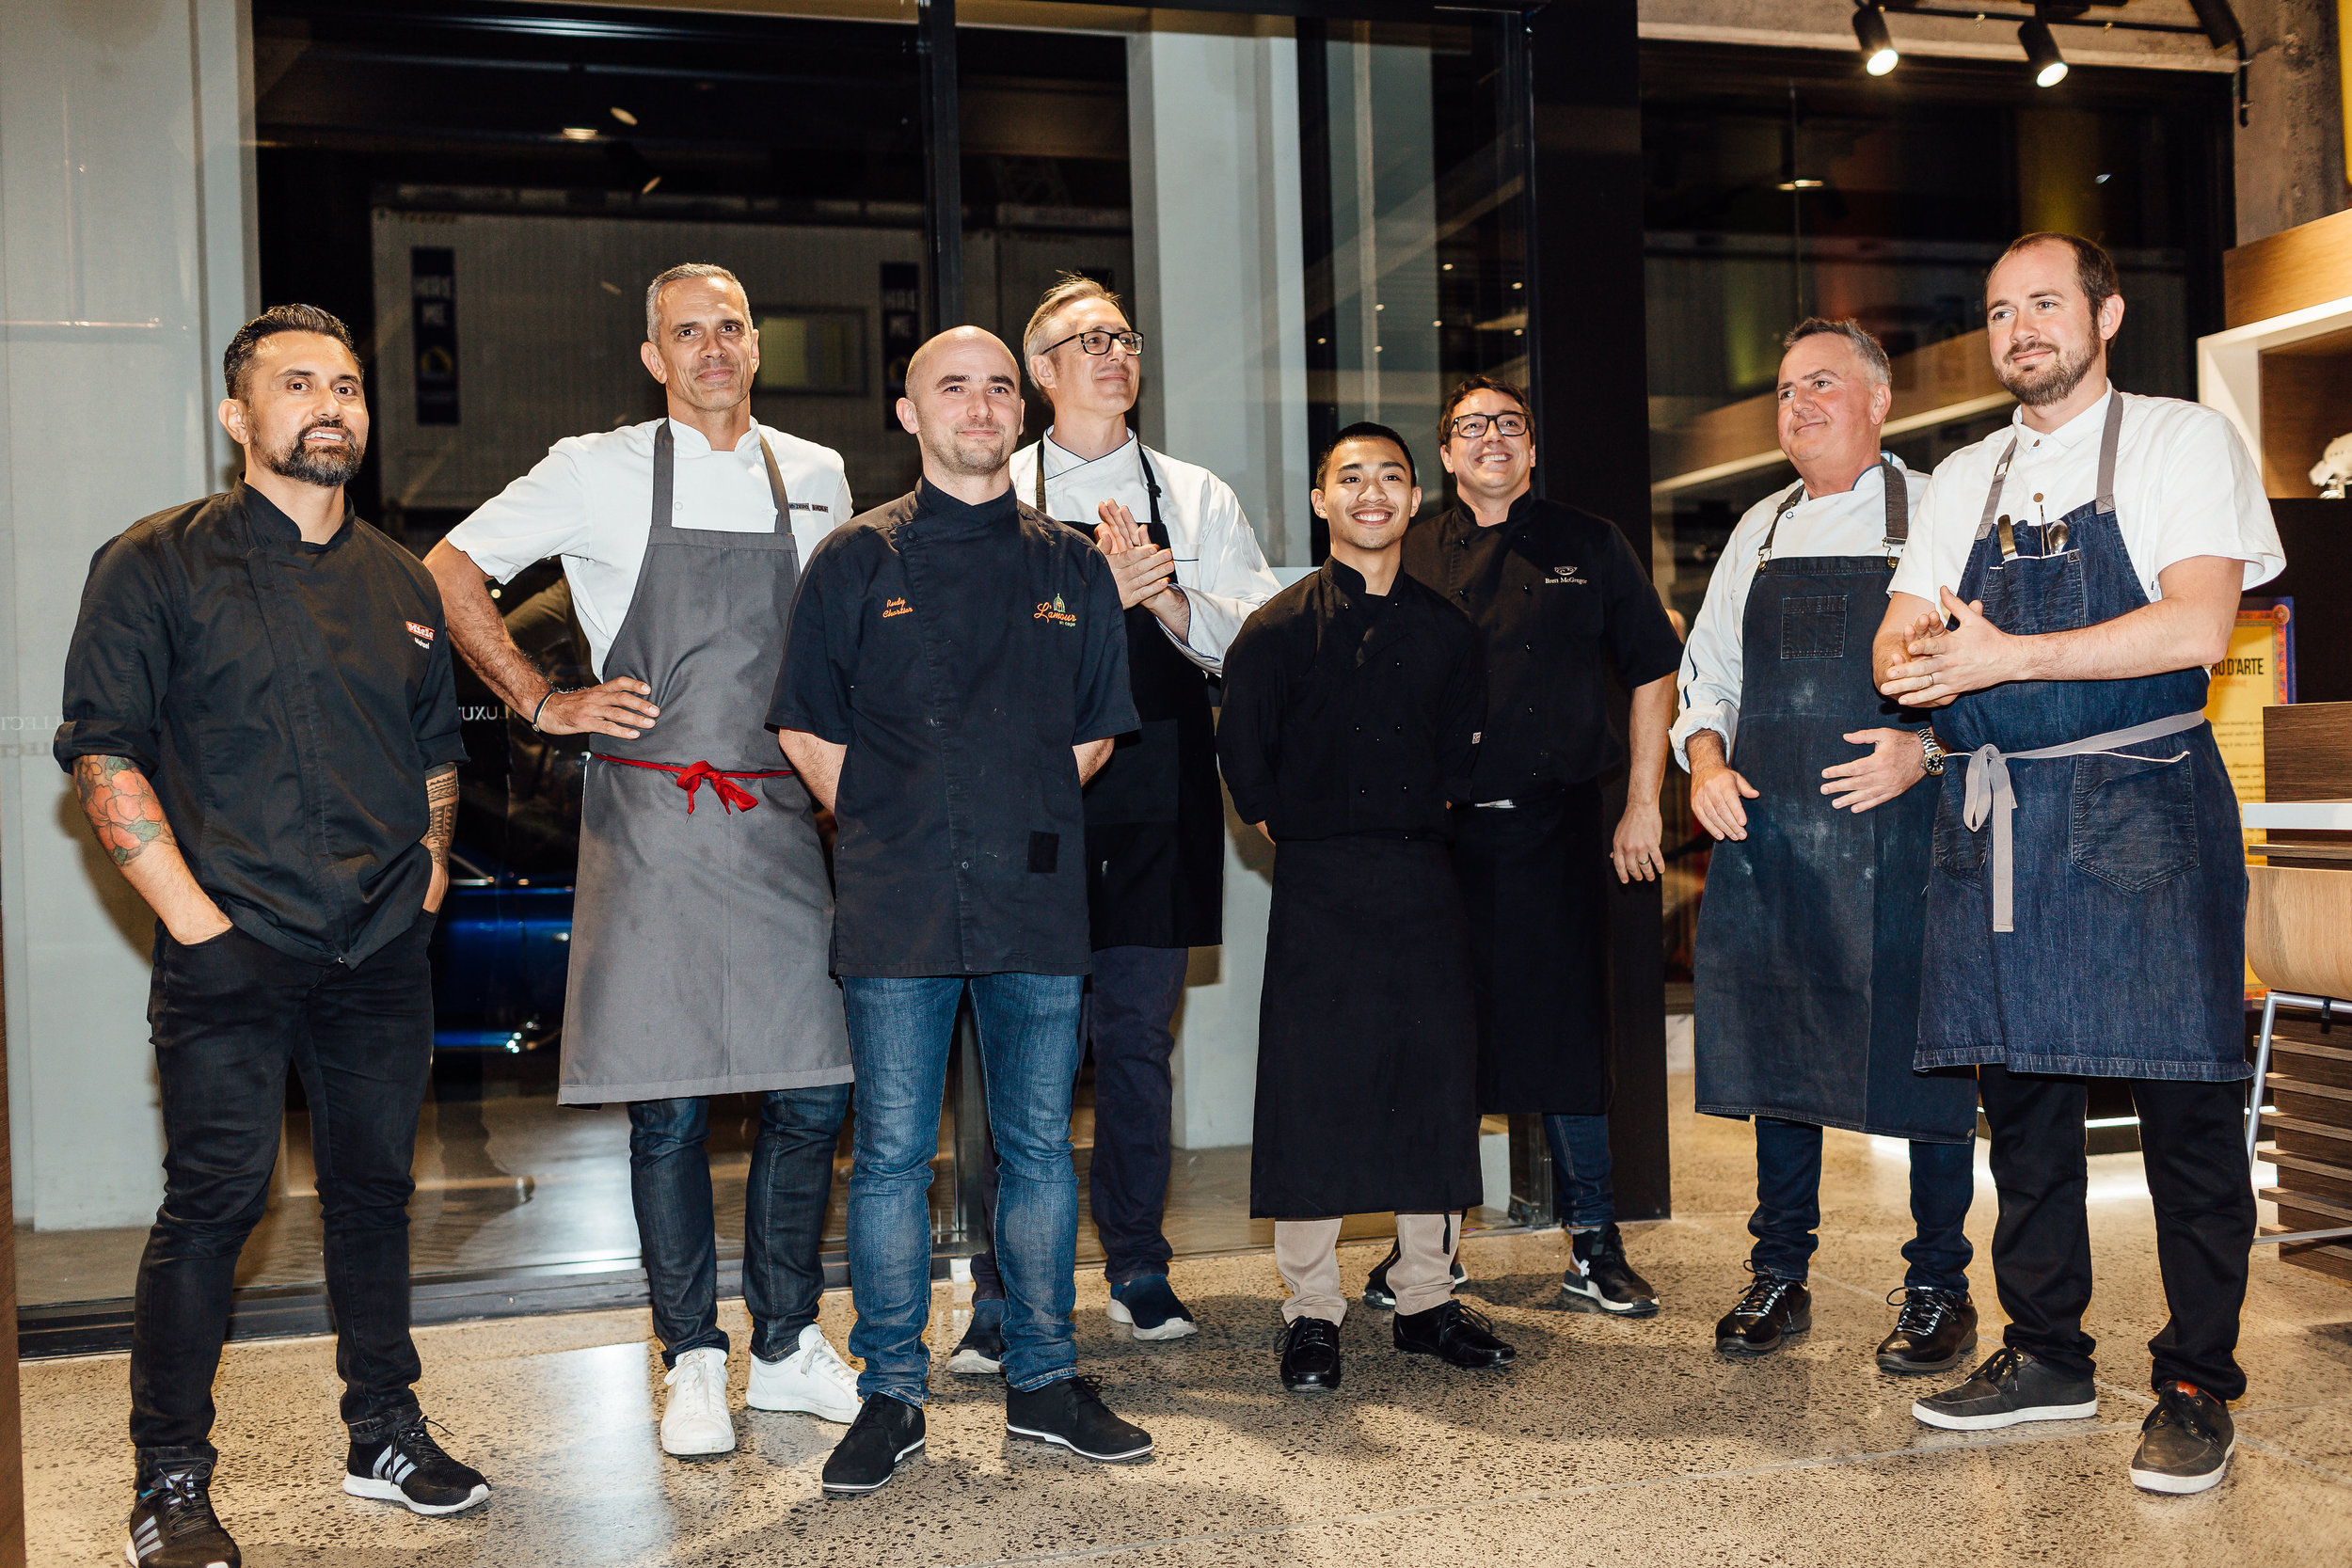 New Zealand's leading chefs cooking on the night: Michael Meredith, Josh Emett, Rudy Chartier, Des Harris, William Mordido, Brett Mc Gregor, Simon Gault  and Giulio Sturla.